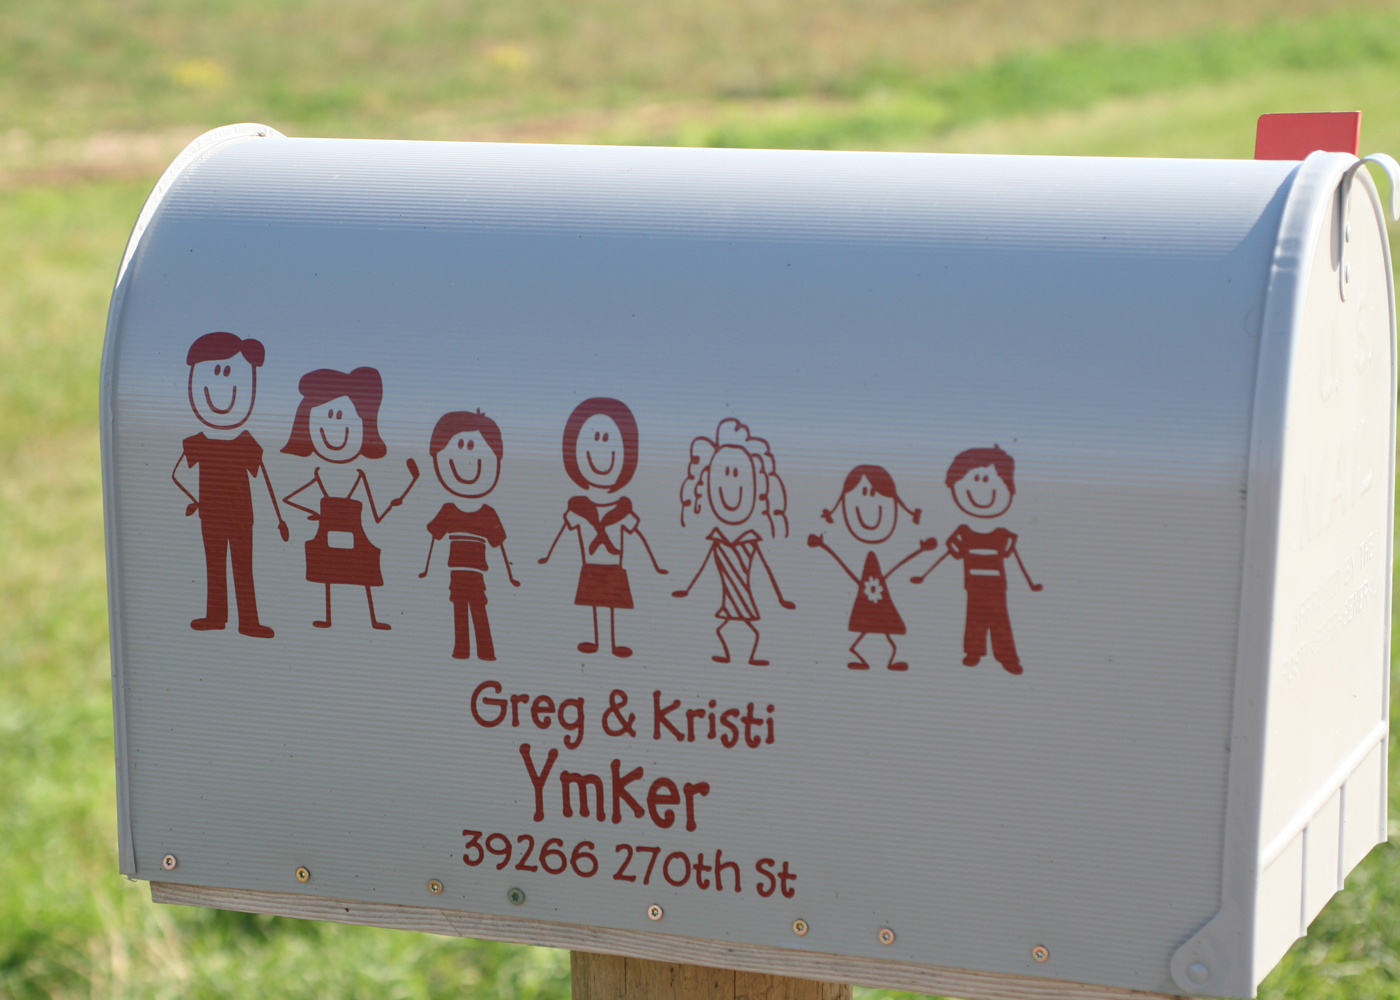 stick-people-vinyl-decals-on-white-mailbox.jpg